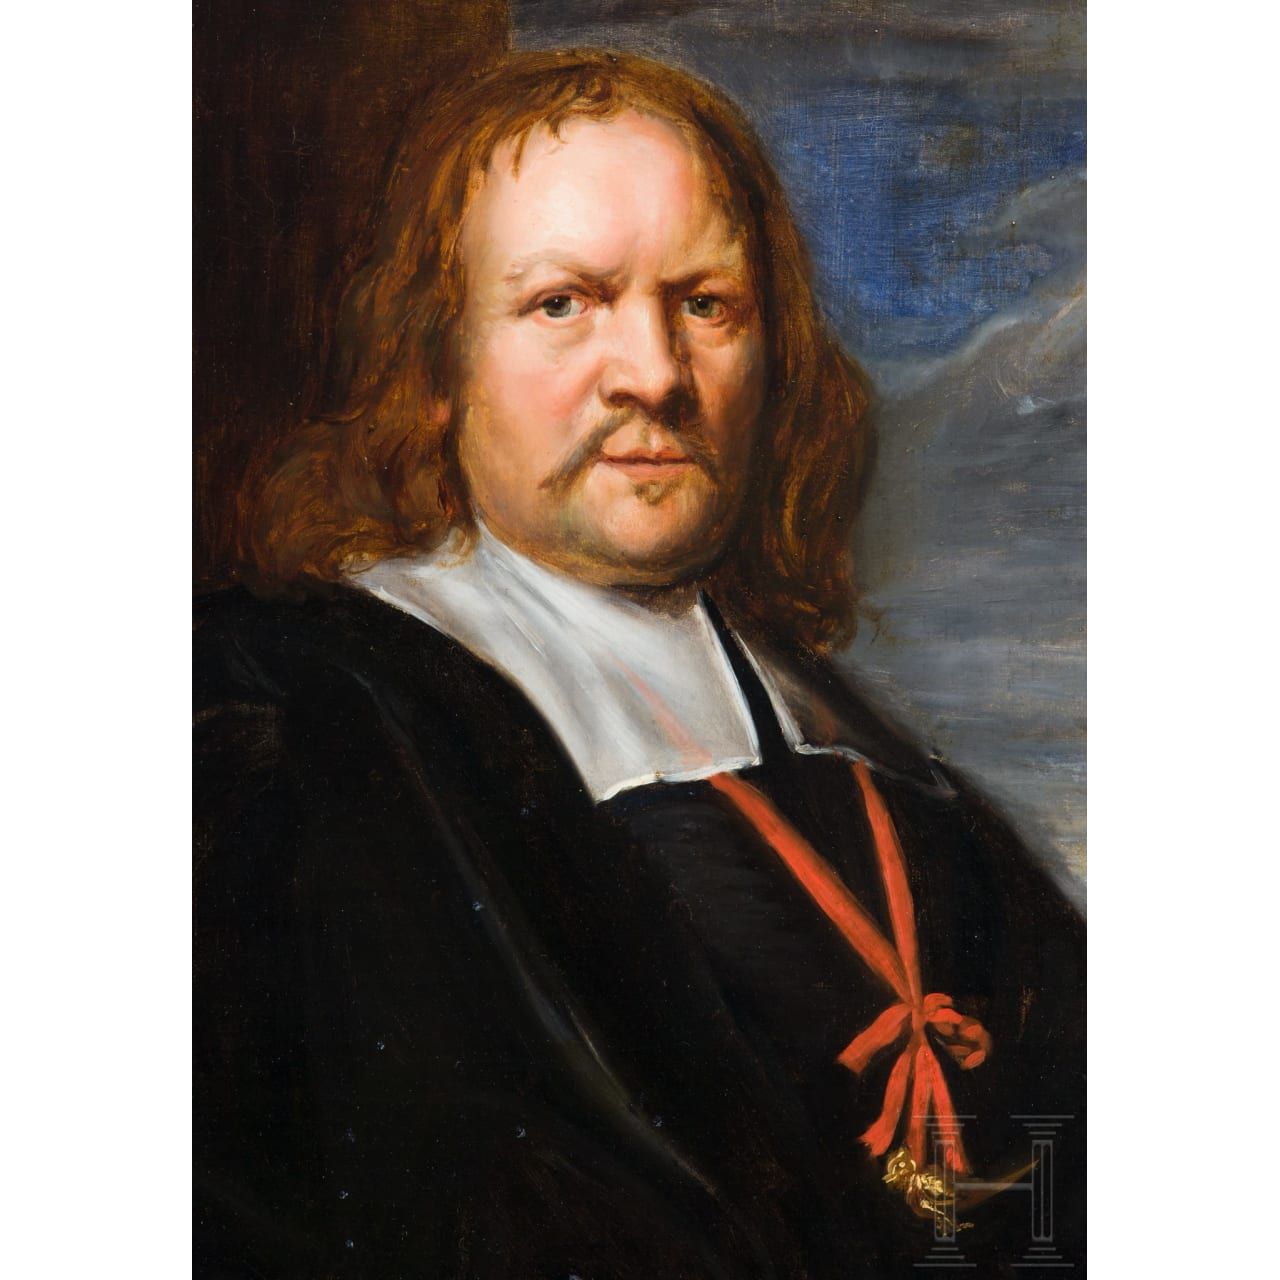 A Dutch portrait of a member of a crossbow shooting society, dated 1665